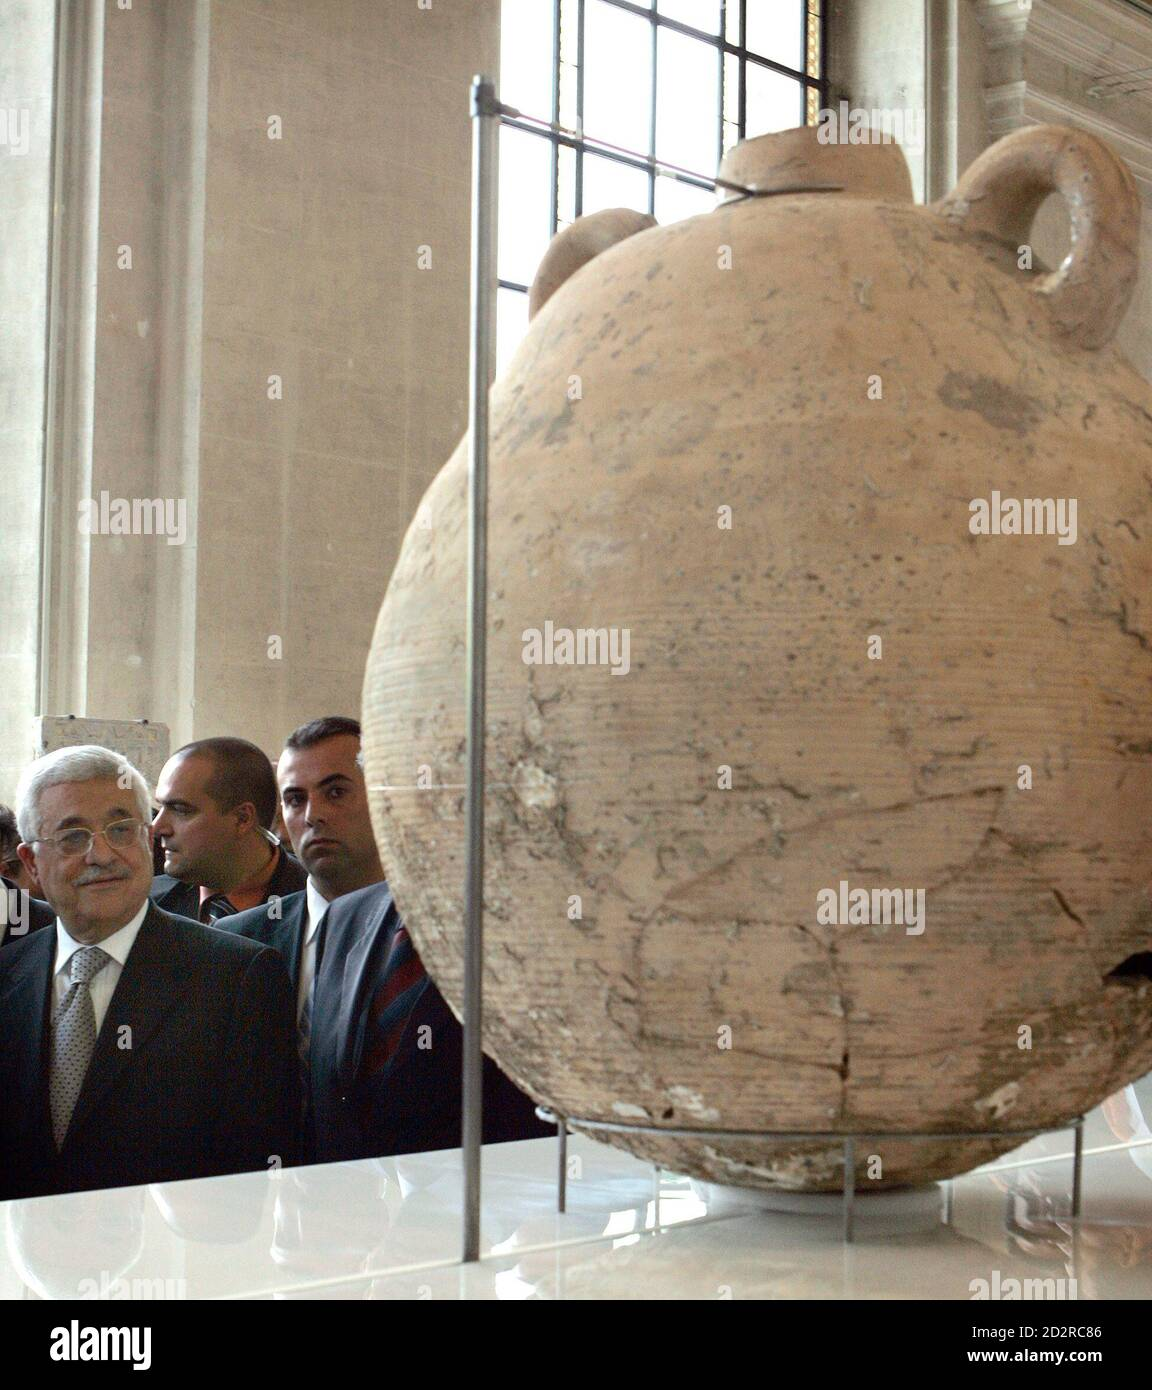 Palestinian President Mahmoud Abbas walks past an amphora during a preview visit at the Musee d'Art et d'Histoire in Geneva April 26, 2007. From April 27 to October 7, 2007 the Museum will hold an exhibition of more than 500 archaeological items recovered from the Gaza strip, revealing  multiple facets of this regions heritage. REUTERS/Denis Balibouse (SWITZERLAND) Foto de stock